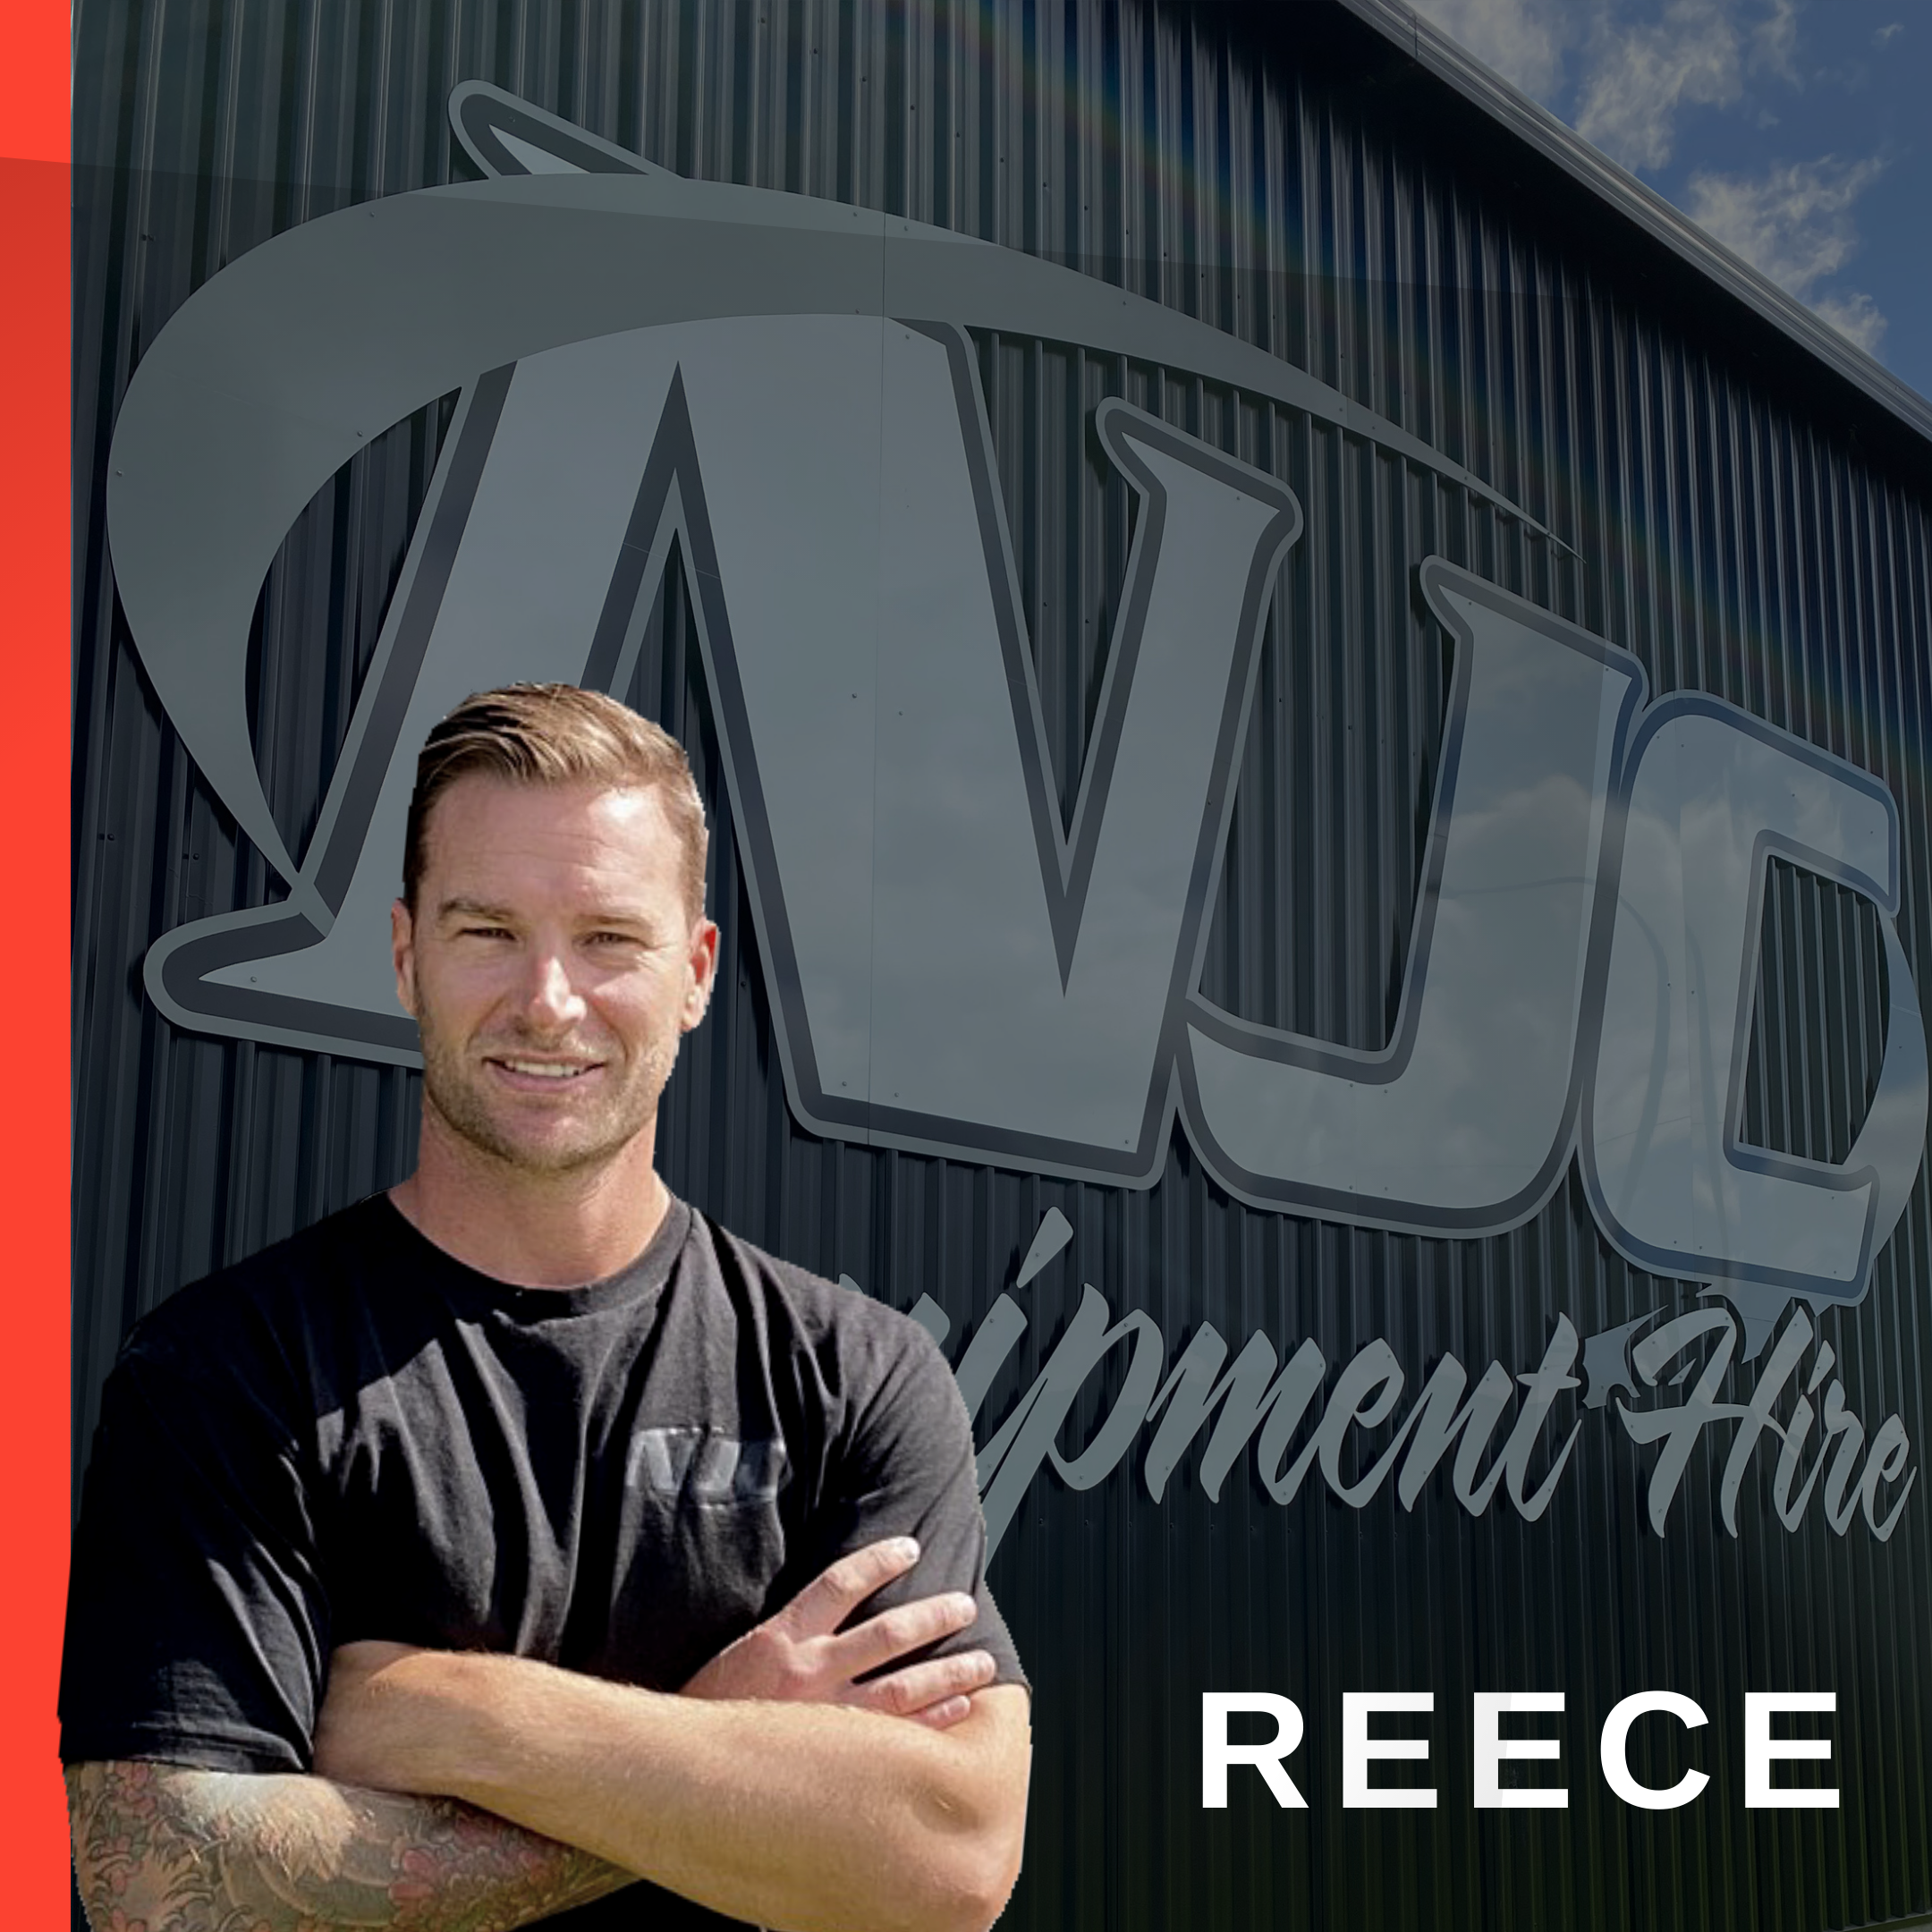 Reece Young NJC